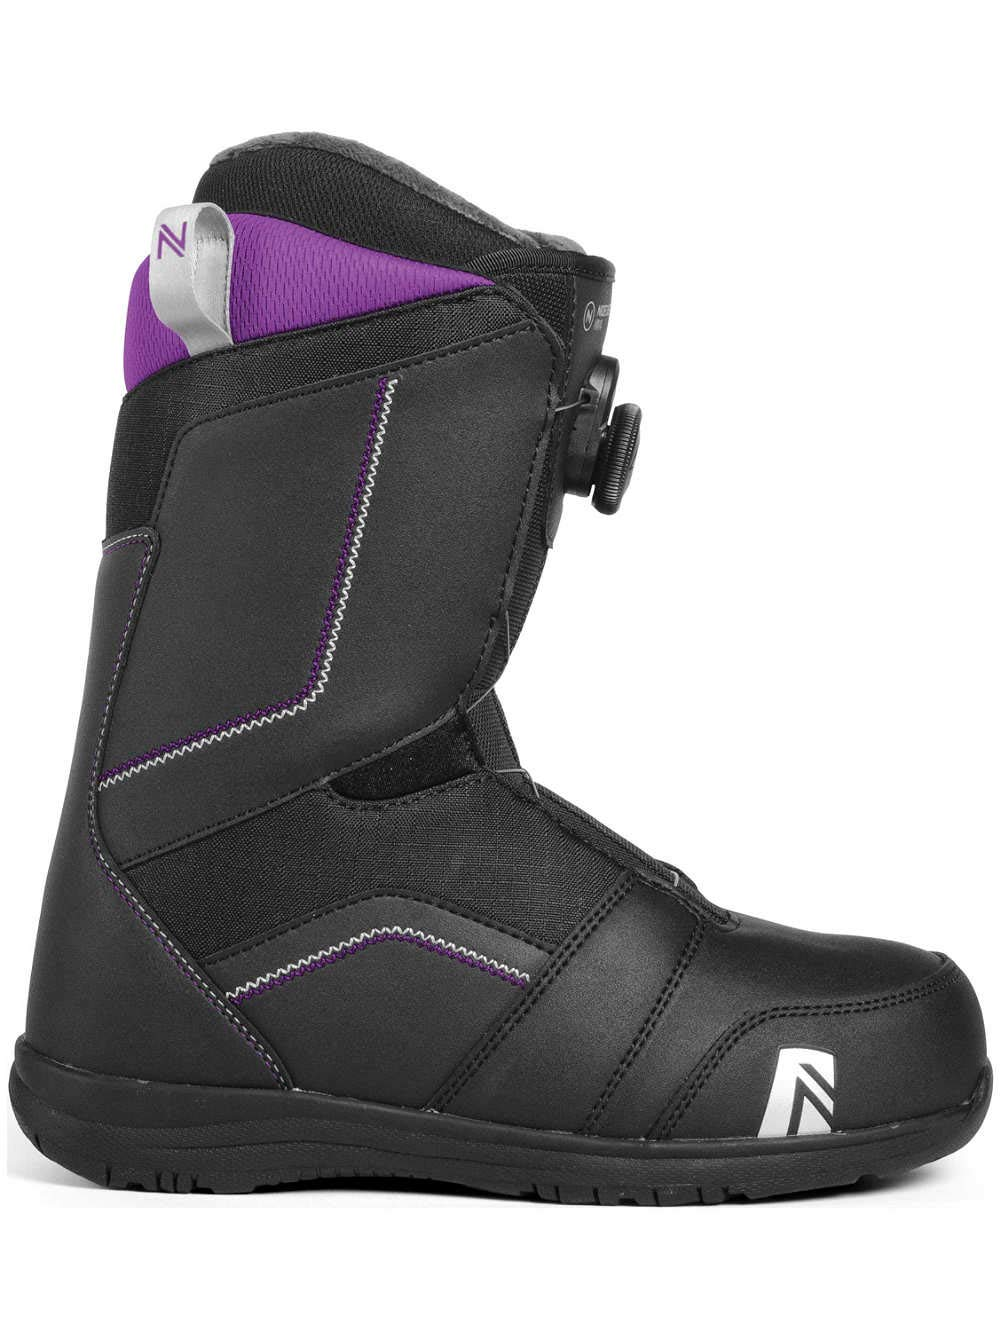 Nidecker Maya Boa Women's Snowboard Boot Size 7.5 (Black) by Nidecker